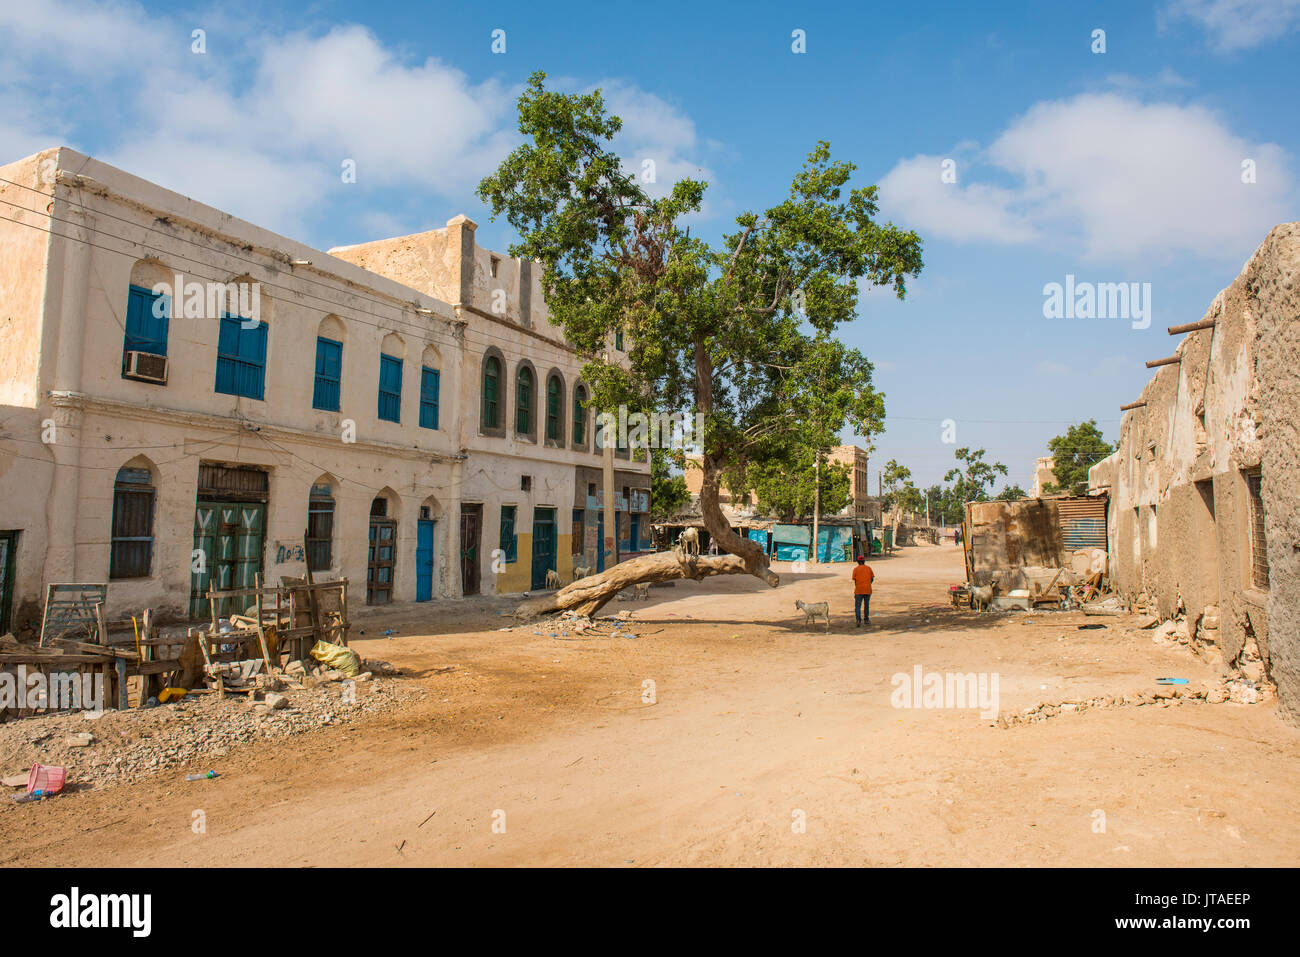 Old BBC radio station in the center of the coastal town of Berbera, Somaliland, Somalia, Africa Stock Photo